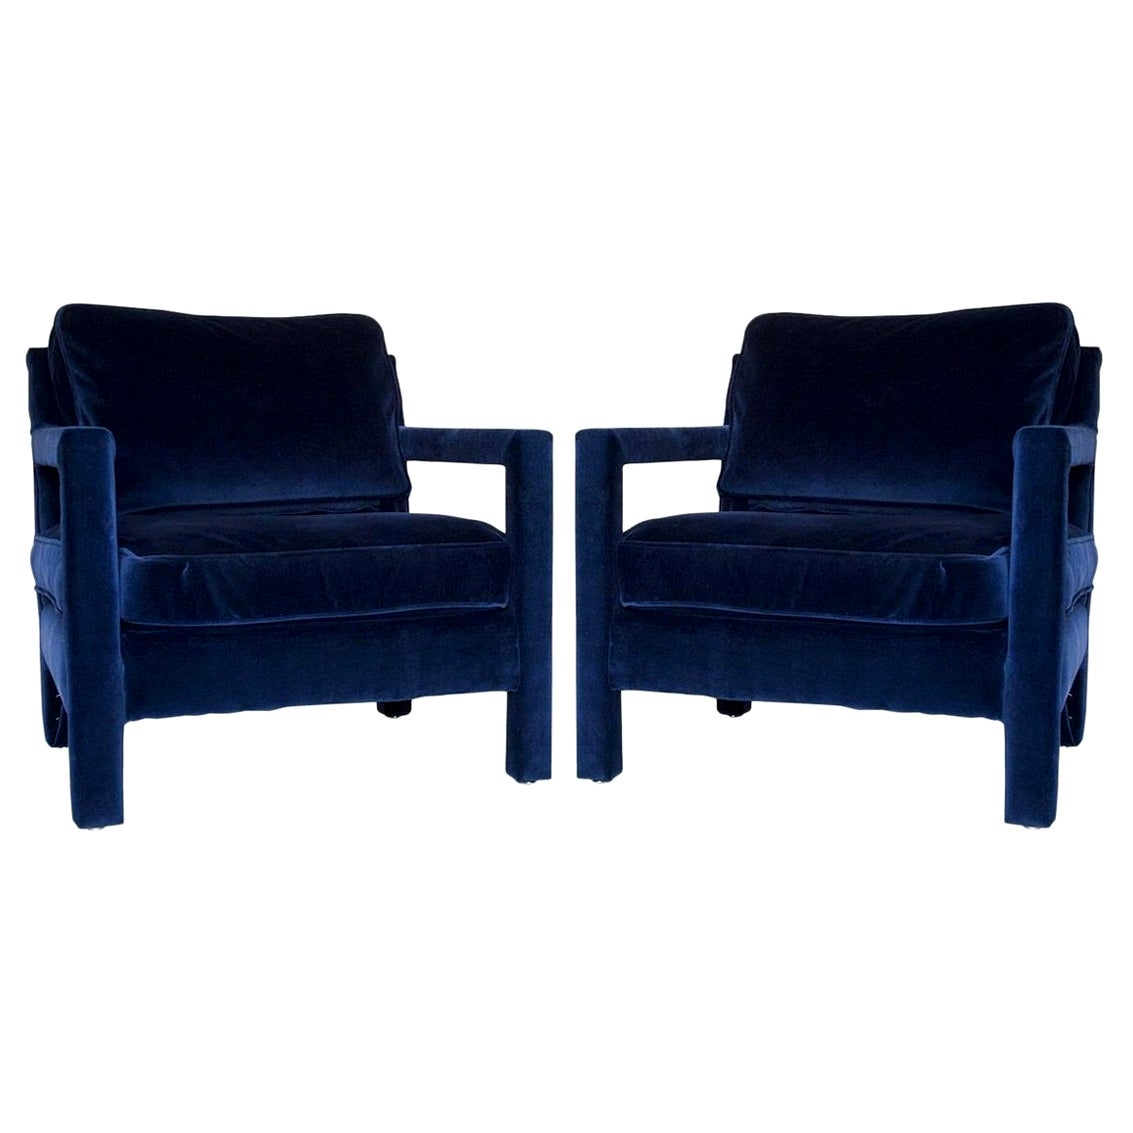 Pair of Milo Baughman Style Parsons Chairs in Blue Velvet